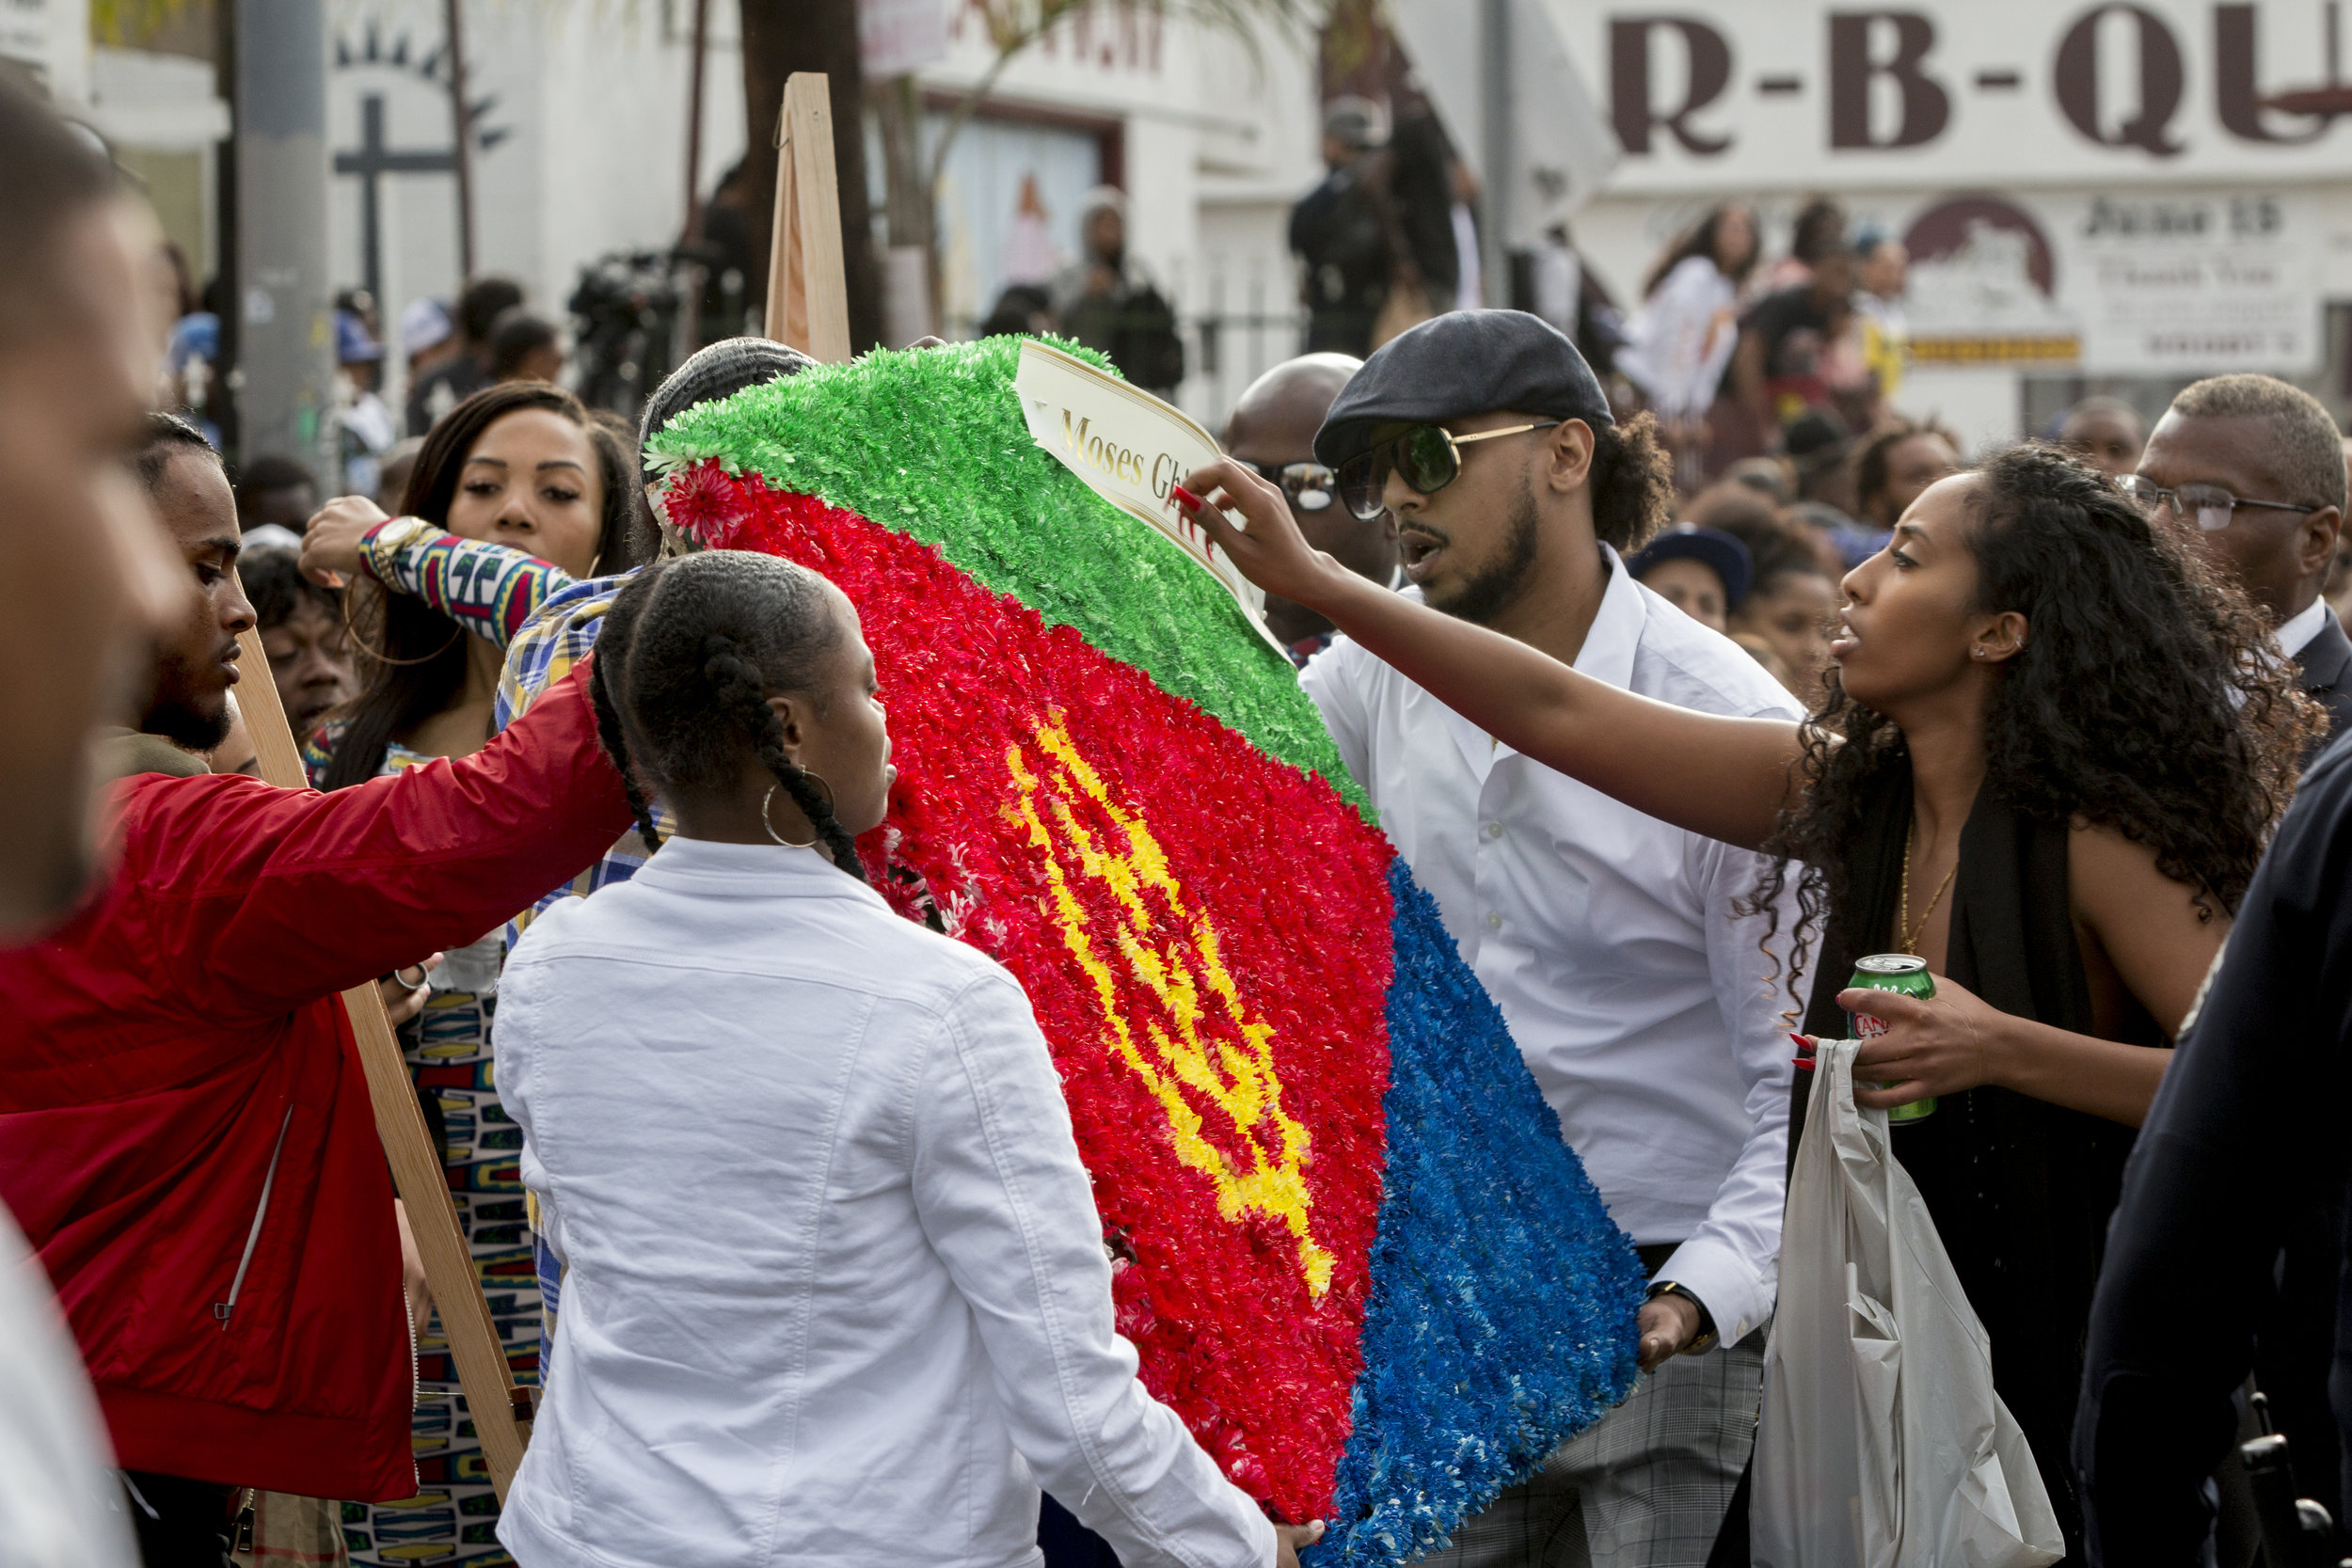 """Members of the Eritrean community prepare a display of flowers arranged as the Eritrean flag to honor the slain rapper Nipsey Hussle during the Celebration of Life procession that will be carrying his casket down Slauson in Los Angeles, California on April 11, 2019.  The hearse carrying the casket of the slain rapper, Nipsey Hussle, will journey a 25.5 mile """"Victory Lap"""" through South Central and ending at the Angelus Funeral home to allow his fans, who could not attend the ceremony, to say goodbye.  (Jose Lopez)"""